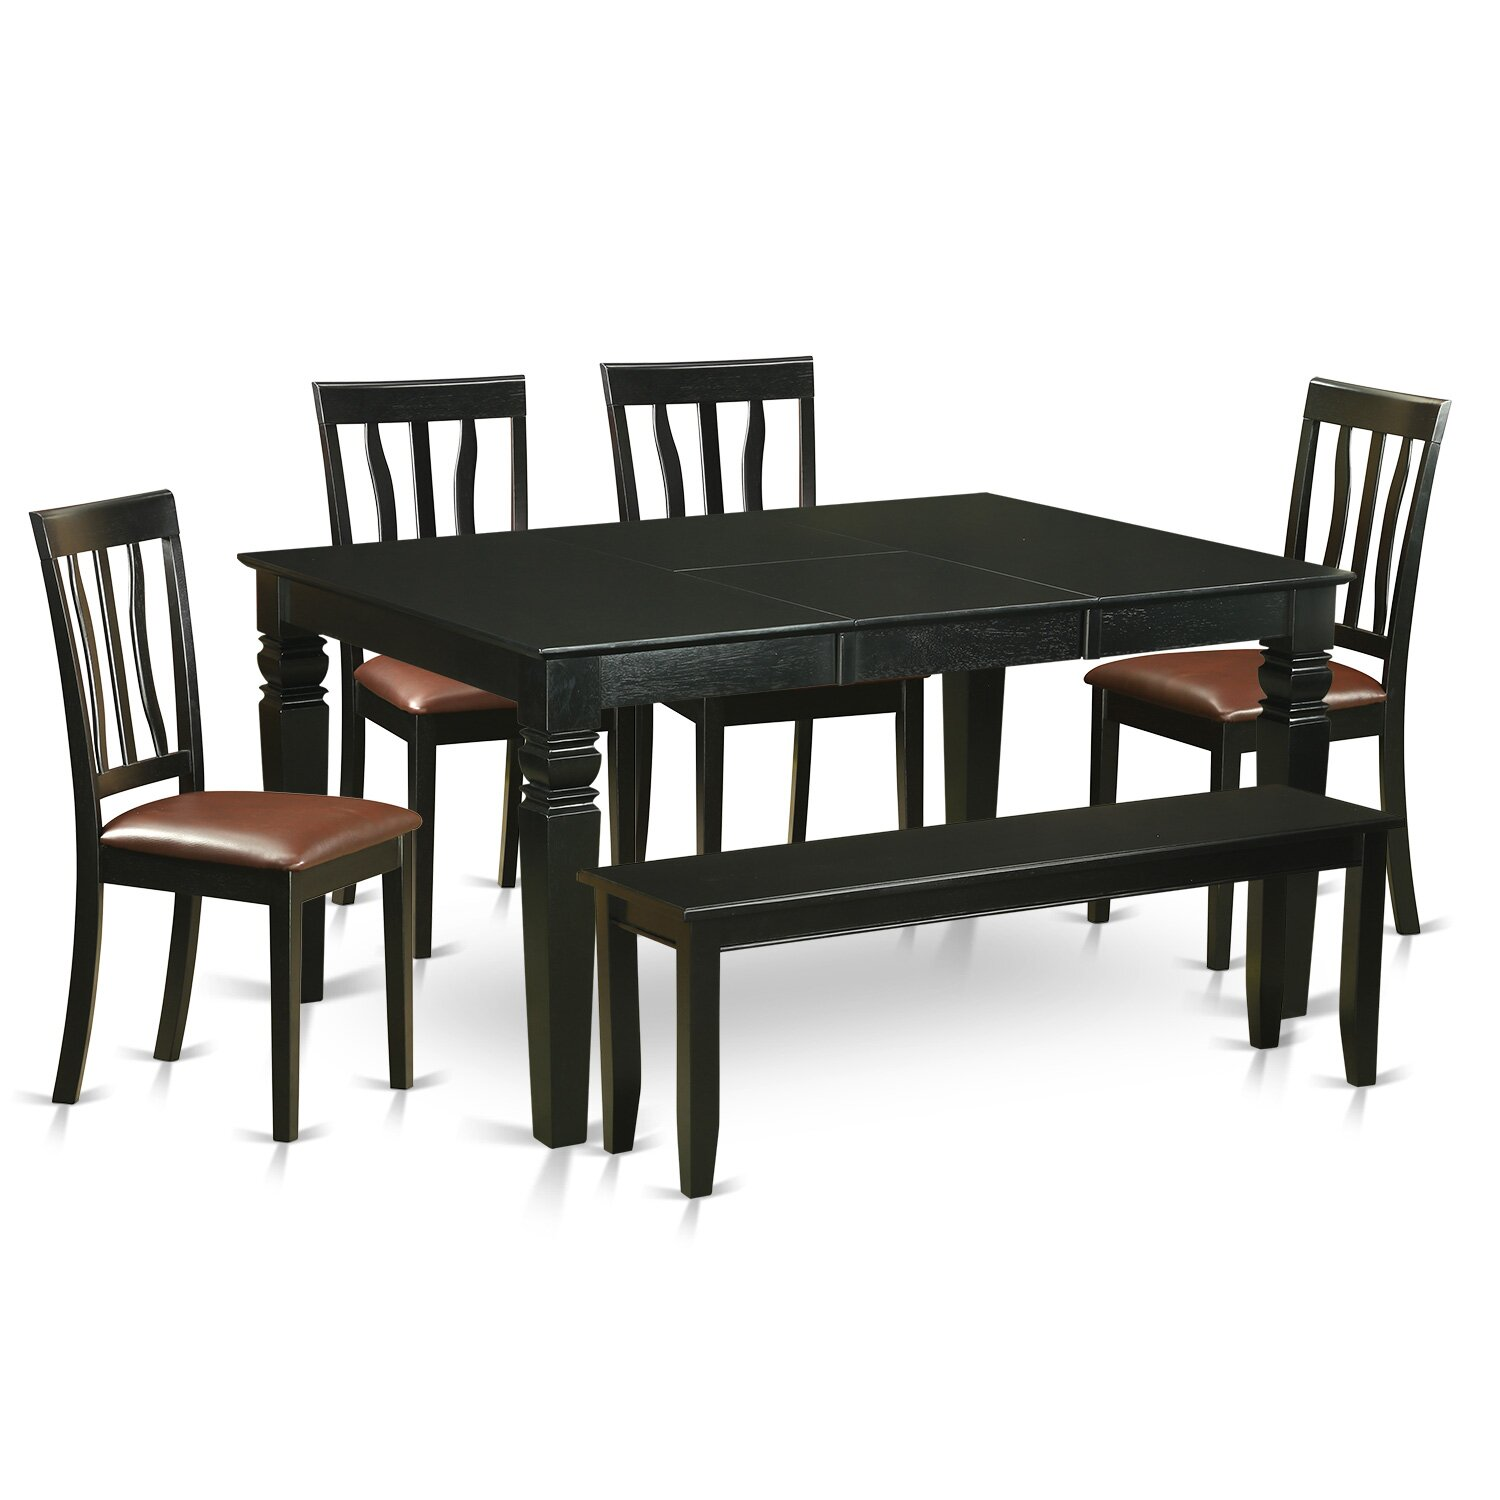 Wooden importers weston 6 piece dining set wayfair for Dinette set with bench